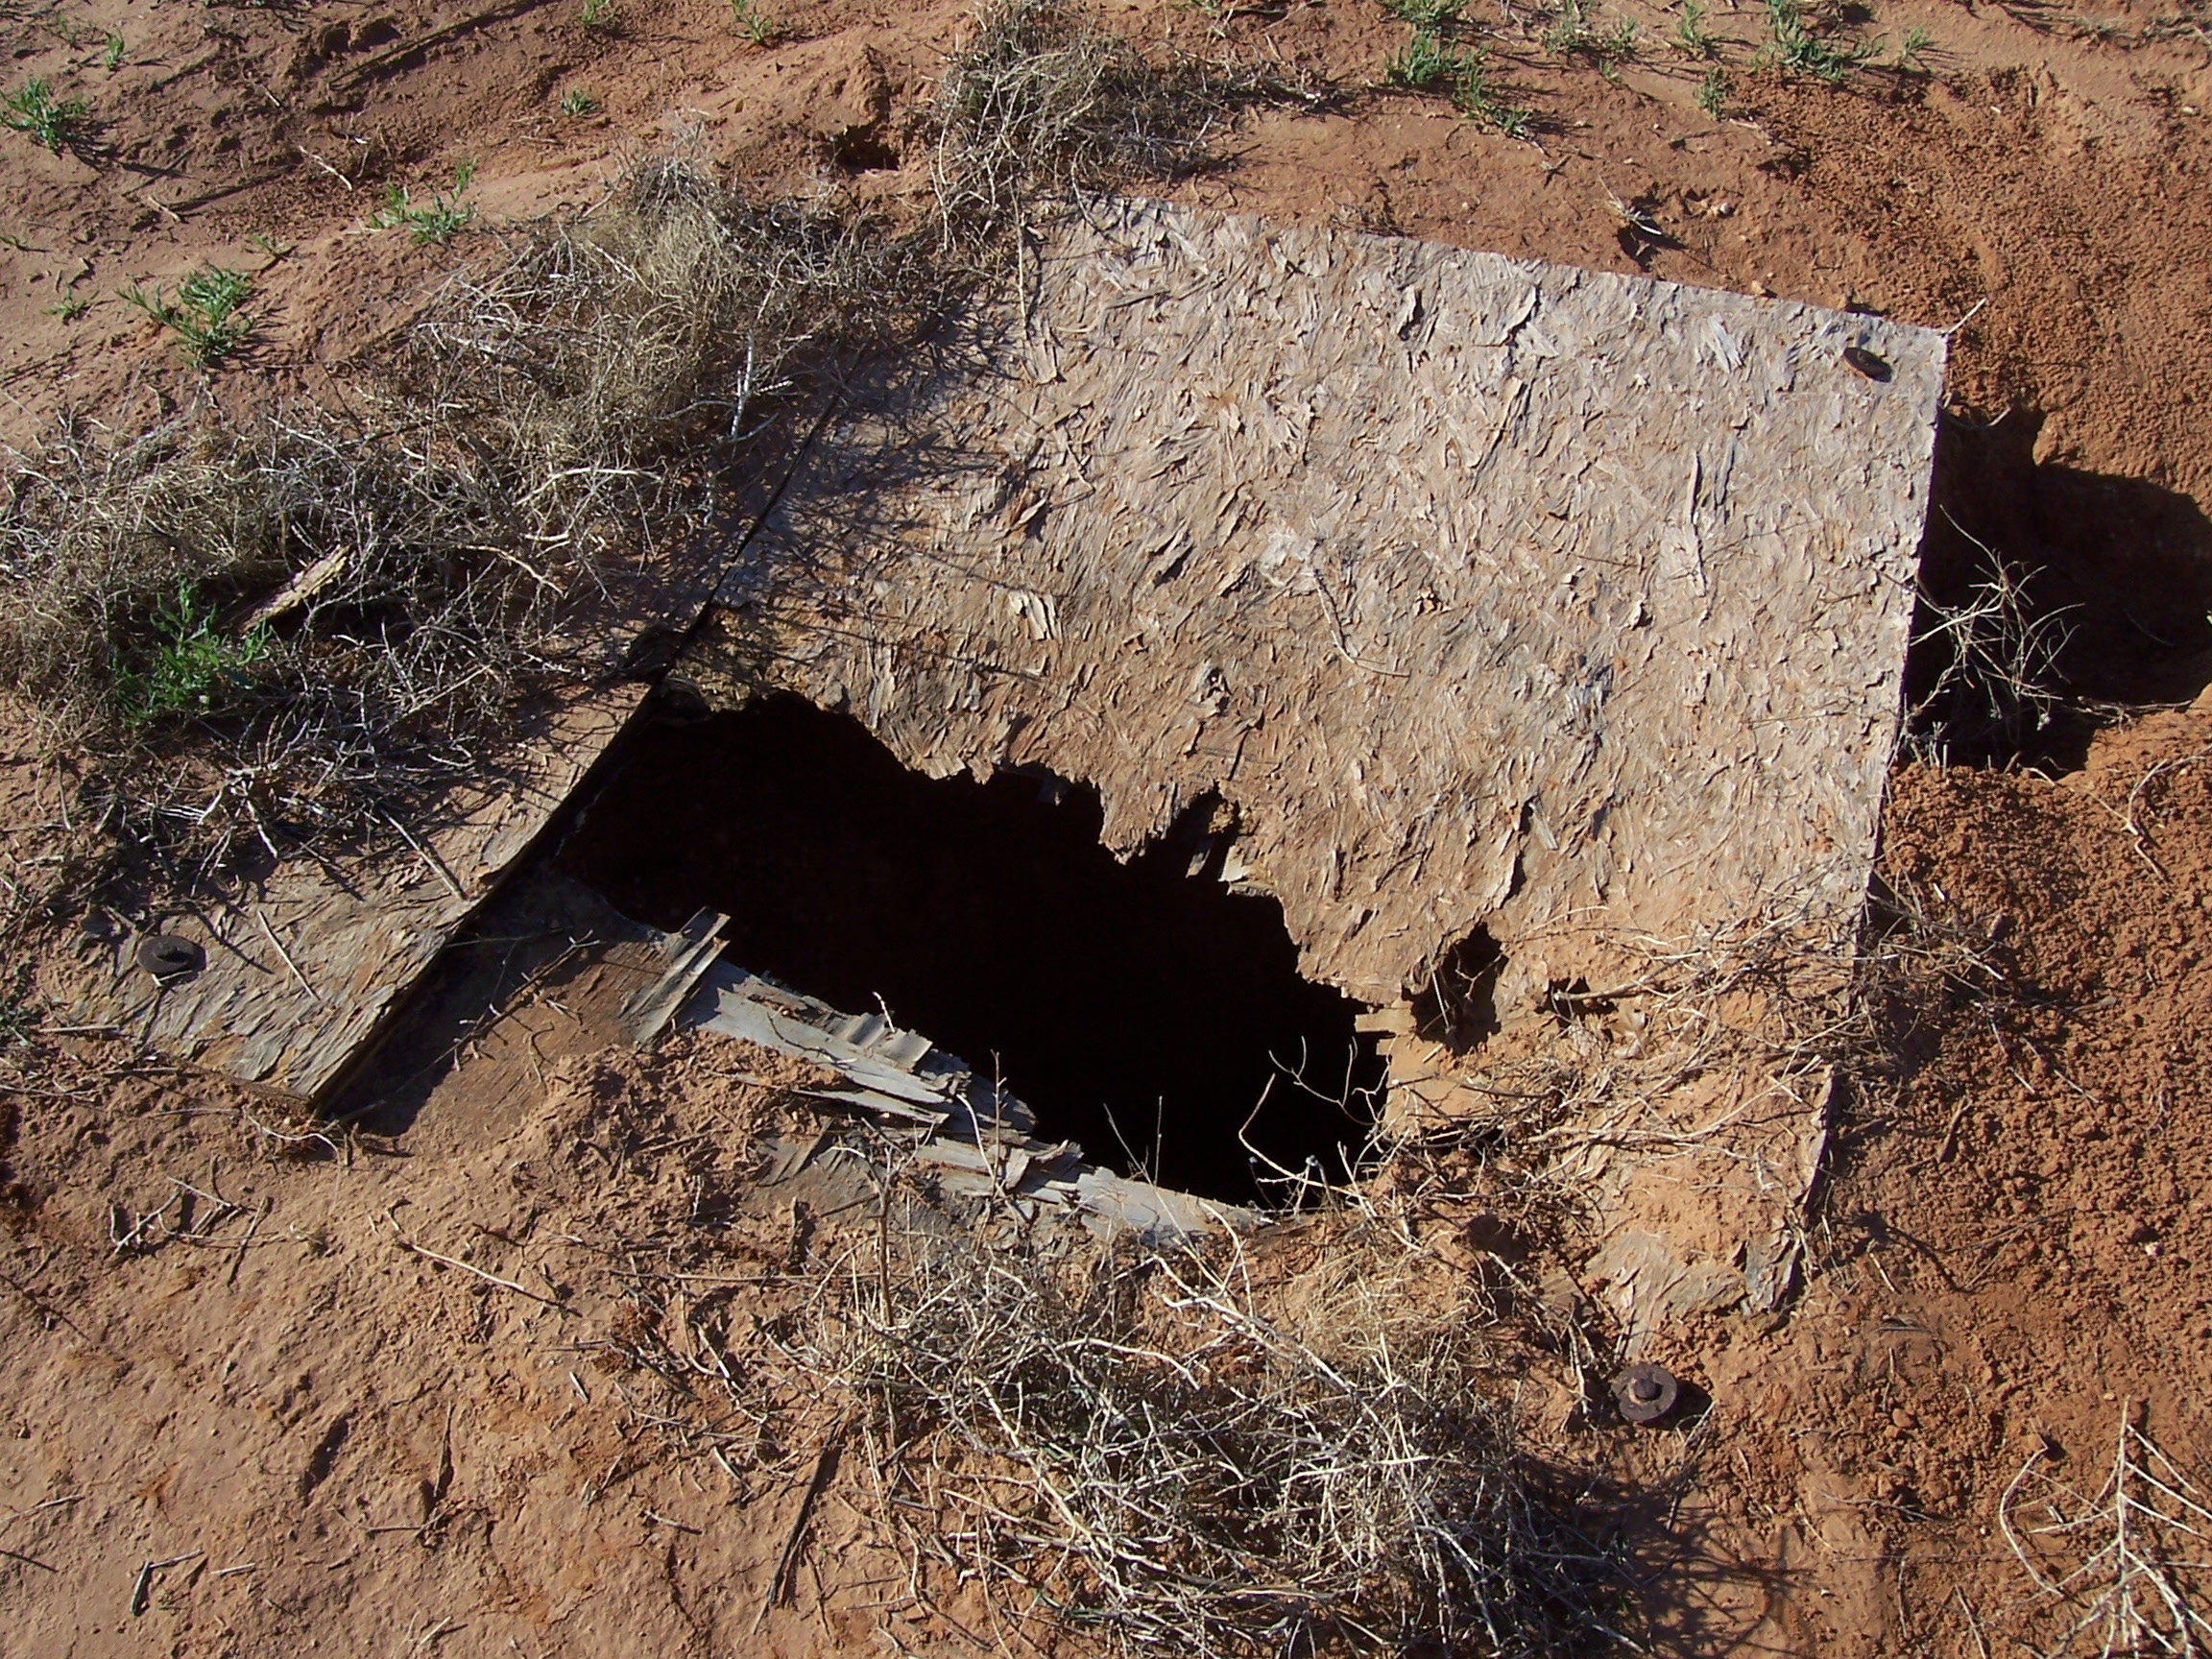 CRUMBLING PARTICLE BOARD COVERS THIS OPEN ABANDONED WELL. THE DEPTH-TO-WATER WAS MEASURED AT 100 FEET AT THE TIME THE WELL WAS DISCOVERED. (hpwd FILE PHOTO)